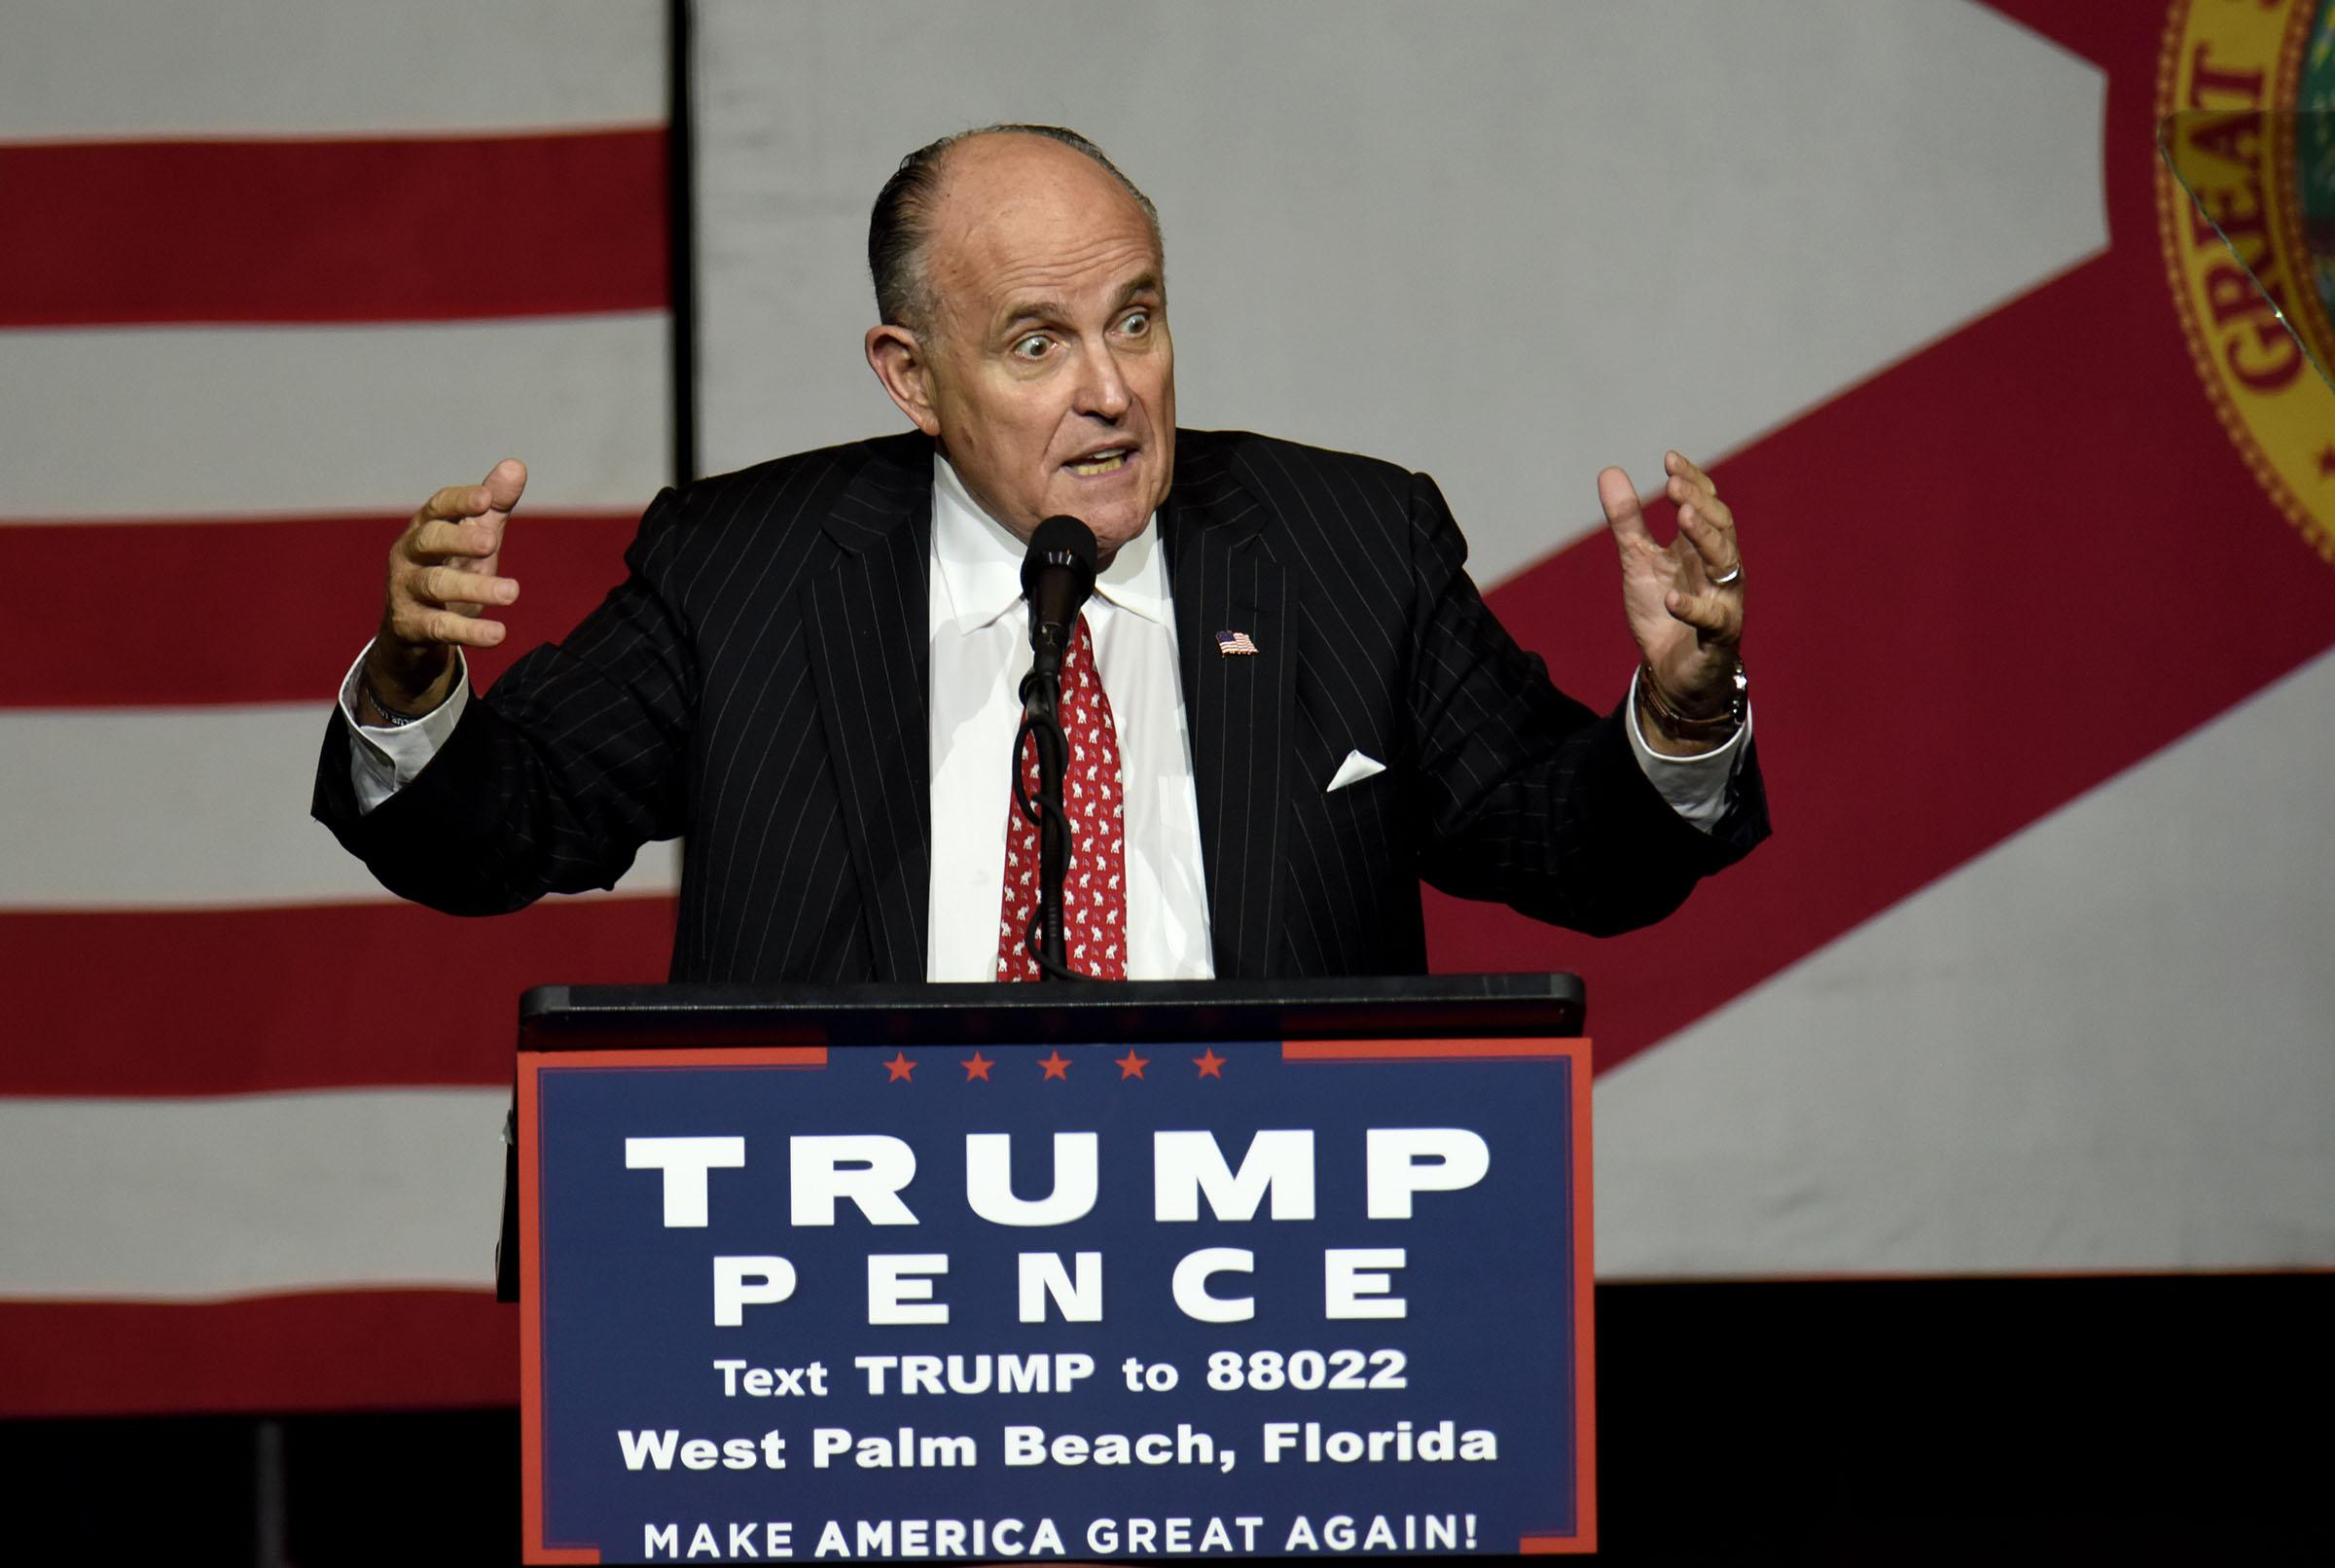 Former New York City Mayor Rudy Giuliani speaks during a campaign rally for Republican presidential candidate Donald Trump at the South Florida Fair Grounds in West Palm Beach, Fla., on Thursday, Oct. 13, 2016. (Maria Lorenzino/Sun Sentinel/TNS)